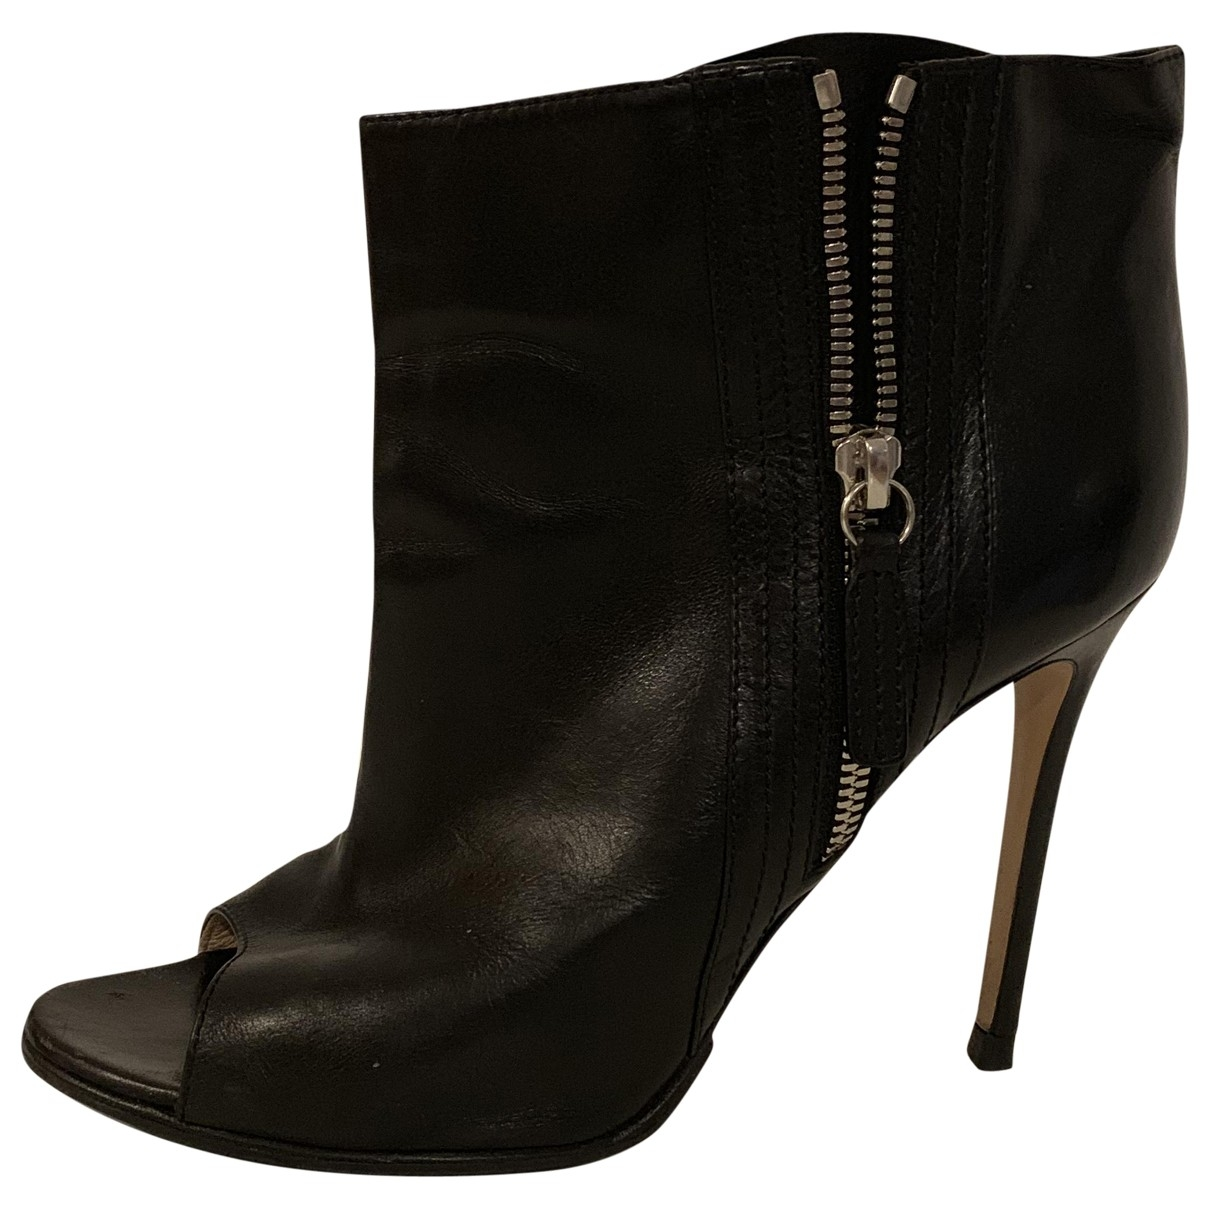 Gianvito Rossi \N Black Leather Ankle boots for Women 38 EU